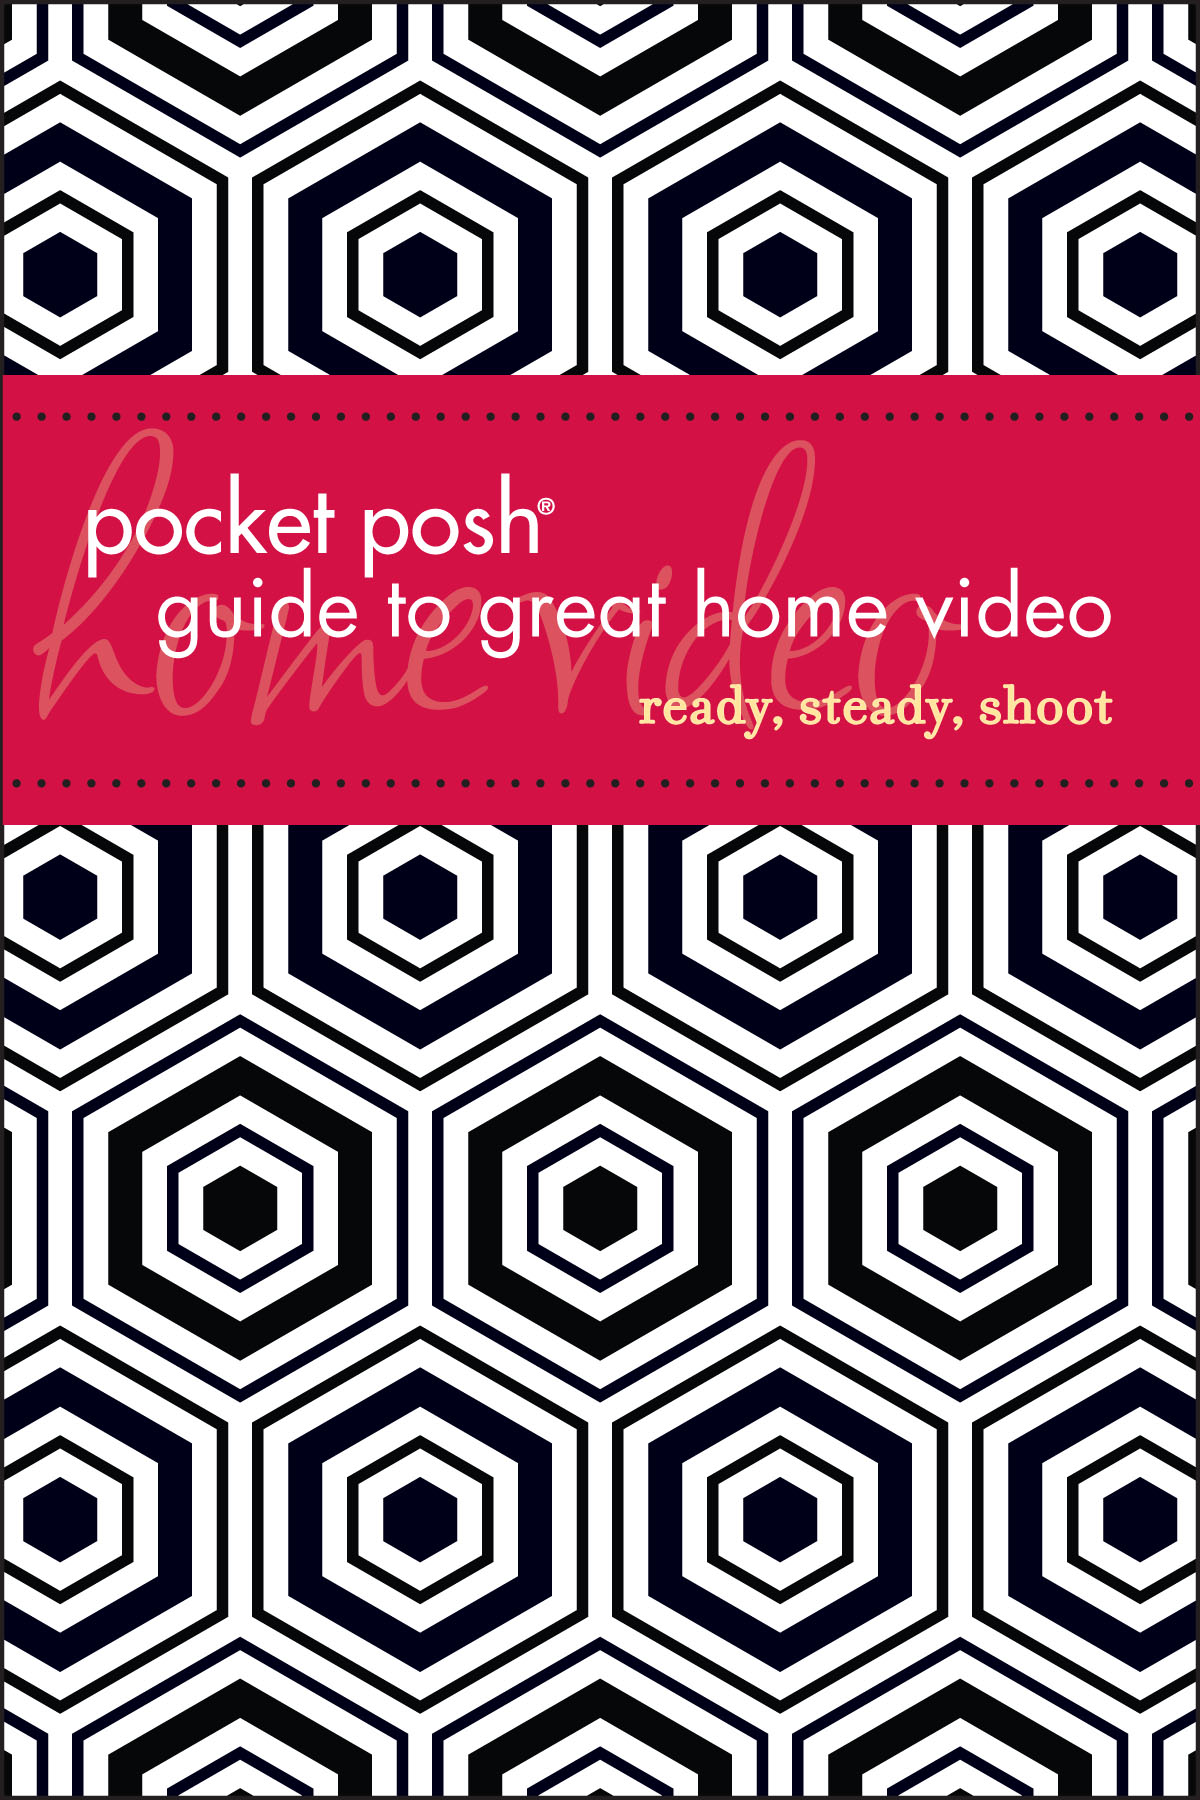 Pocket Posh Guide to Great Home Video: Ready, Steady, Shoot